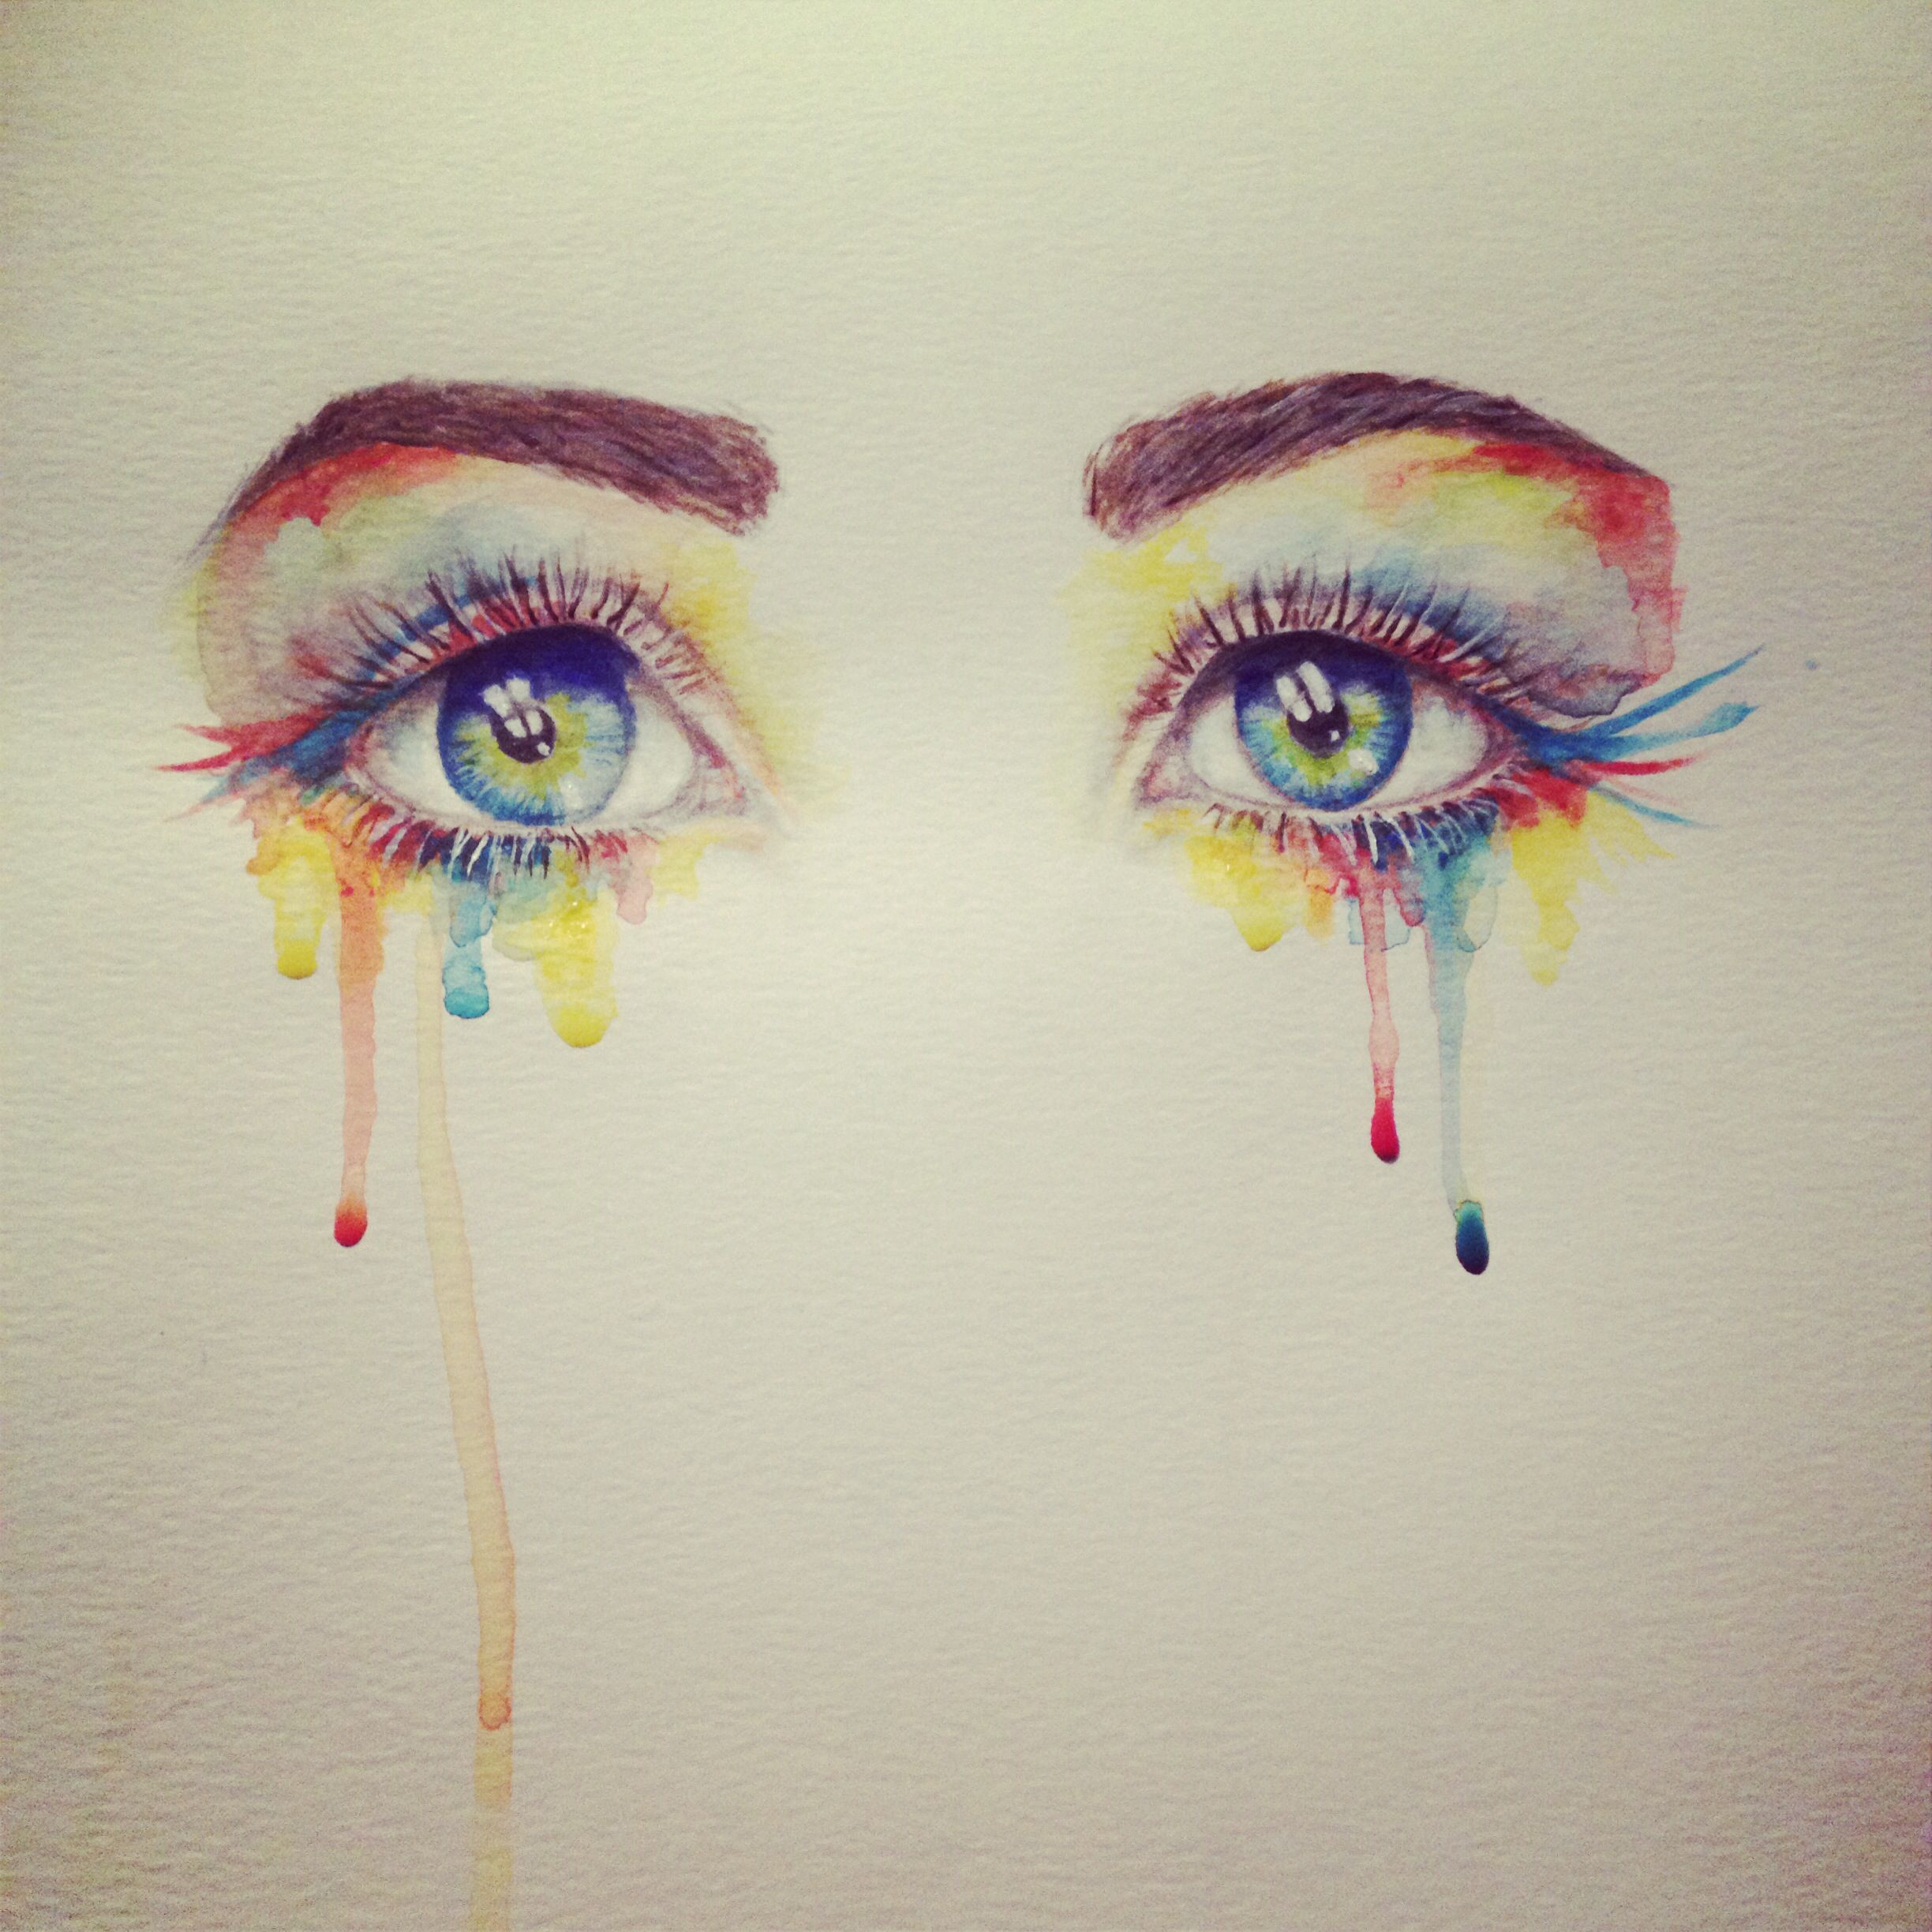 Watercolor eyes - by Miranda Watson | Watercolor eyes, Eye art ...